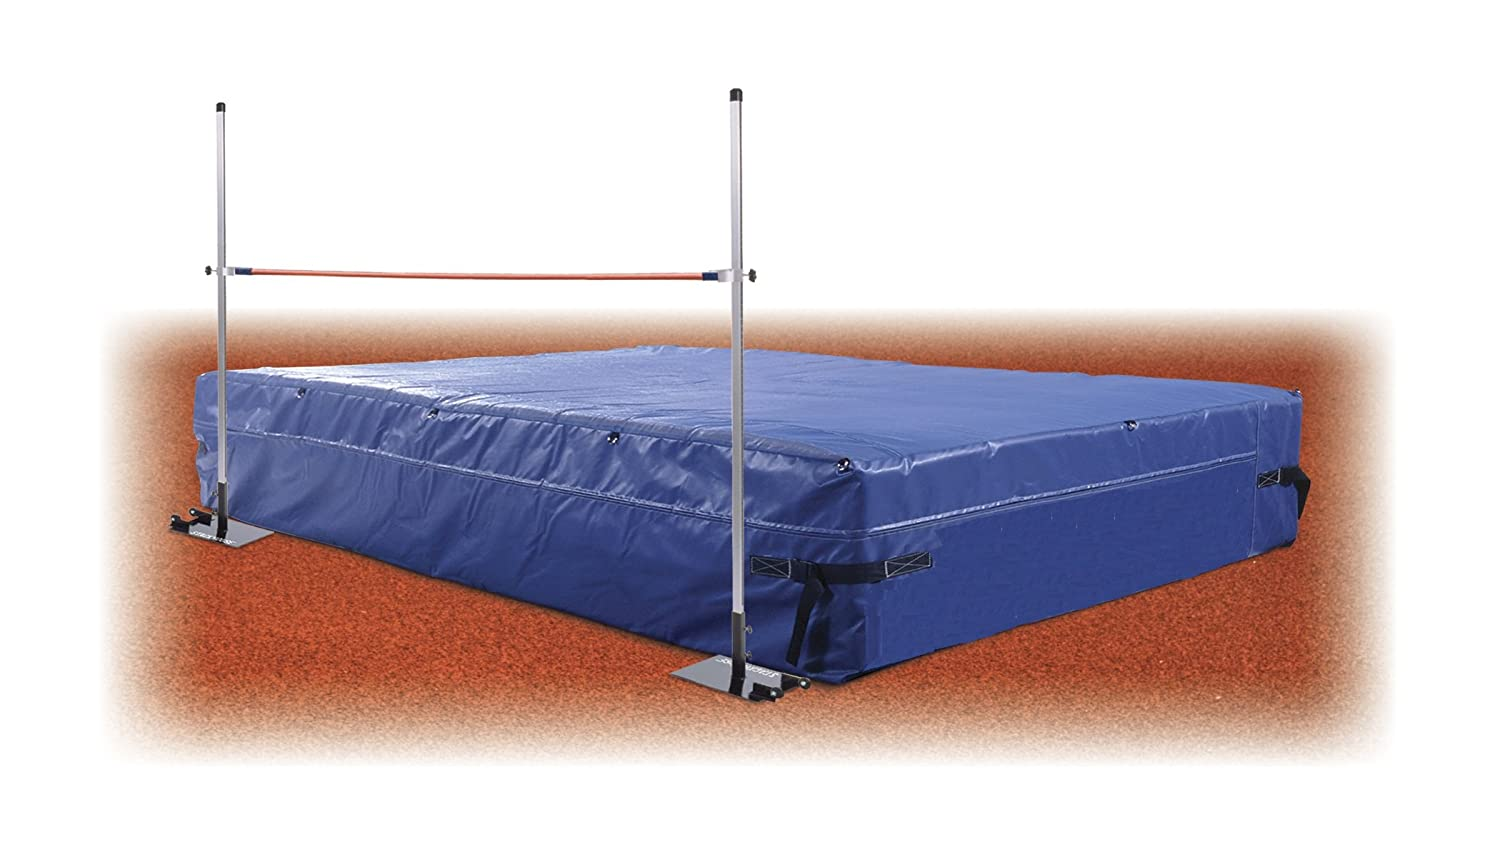 Track & Field High Jump Mat Value Package 6'D X 12'W X 24' H - Includes High Jump Standards, Weather Cover & Official Crossbar Track Star Sports